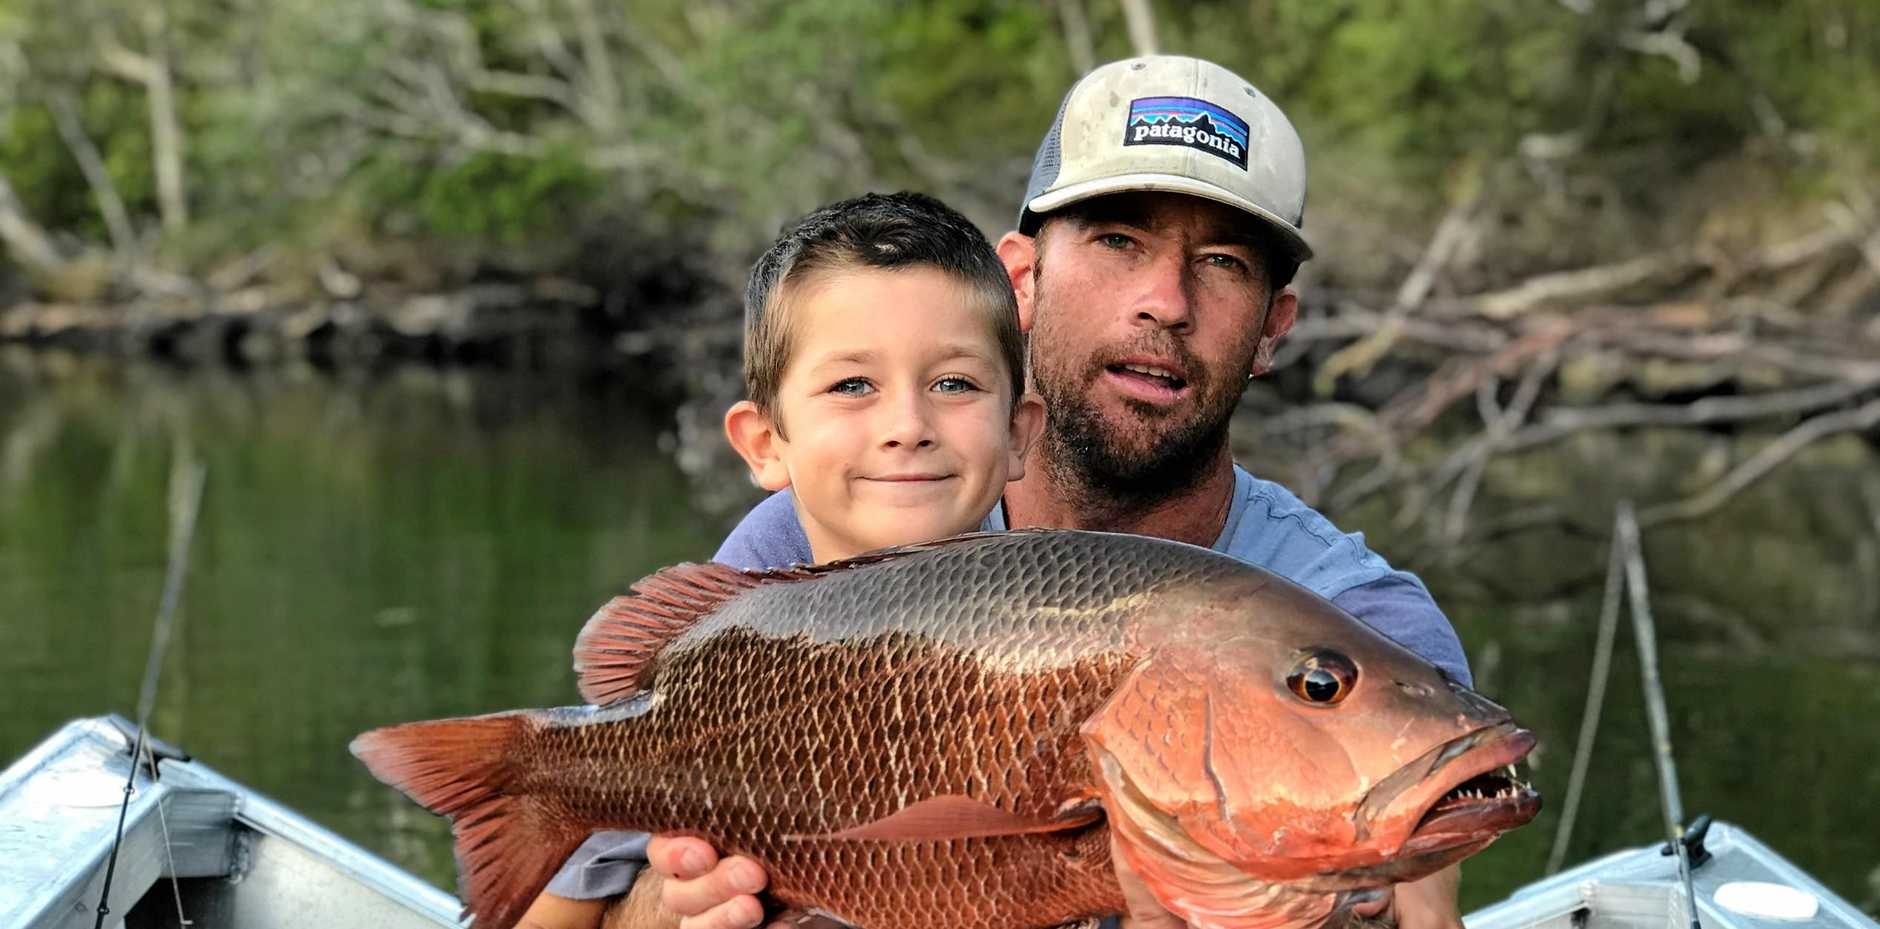 TOP CATCH: Budding Yamba angler Reef Ives hauled in this 3kg mangrove jack while out fishing on the Clarence River with dad Todd. Reef found his way on to the Fish of the Week table after weighing it in at the BP Bait Place in Yamba.